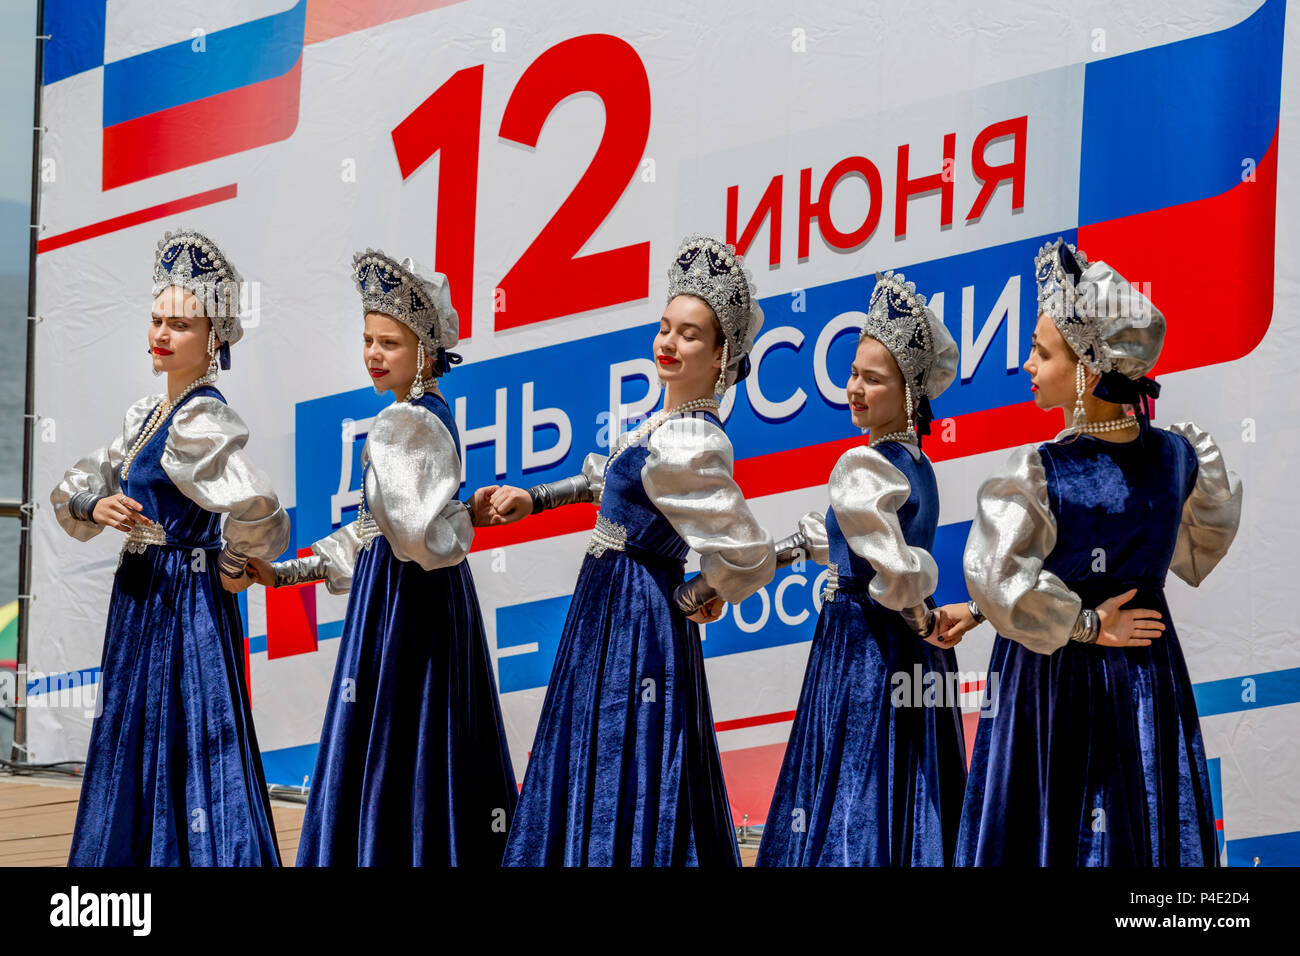 Russia, Vladivostok, 06/12/2018. Beautiful ladies in traditional Russian costumes perform on stage in a honor of Russia Day. Annual celebration Russia - Stock Image